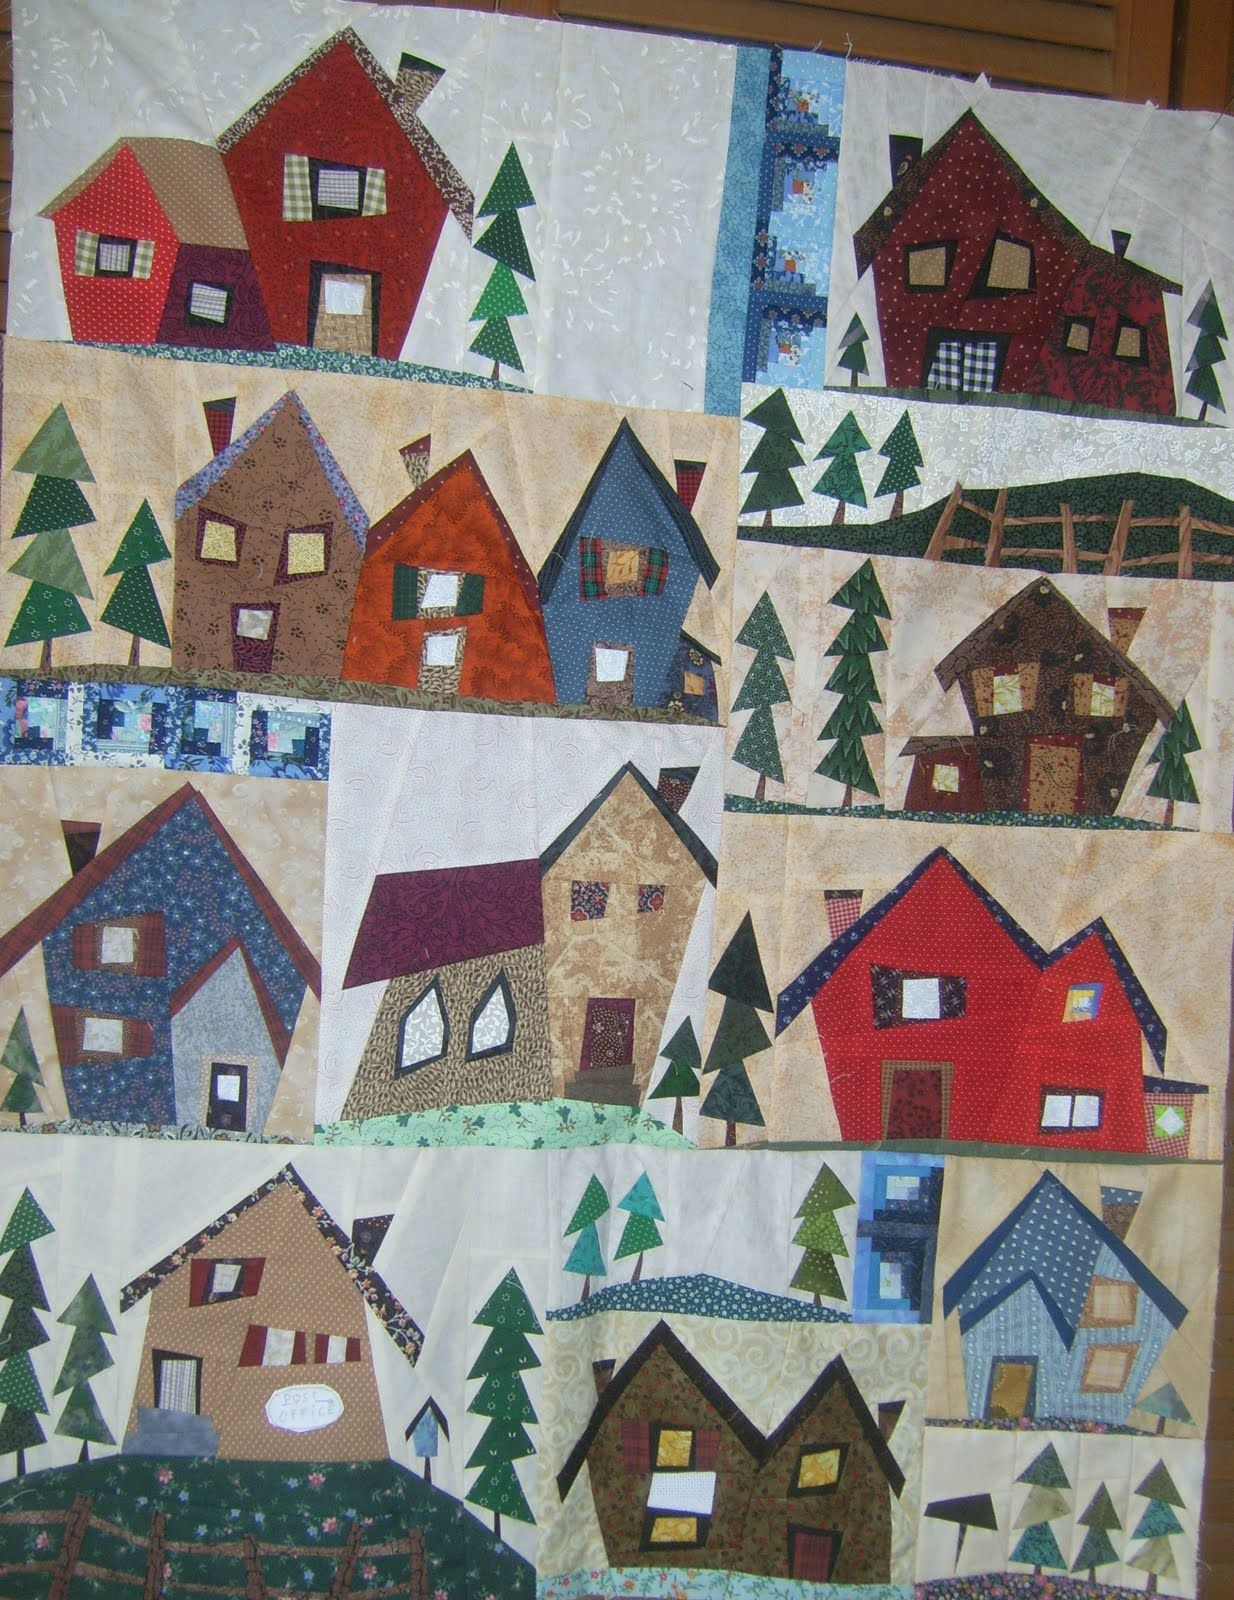 sulky village - Google zoeken | Sulky AWESOME Paper pieced houses ...